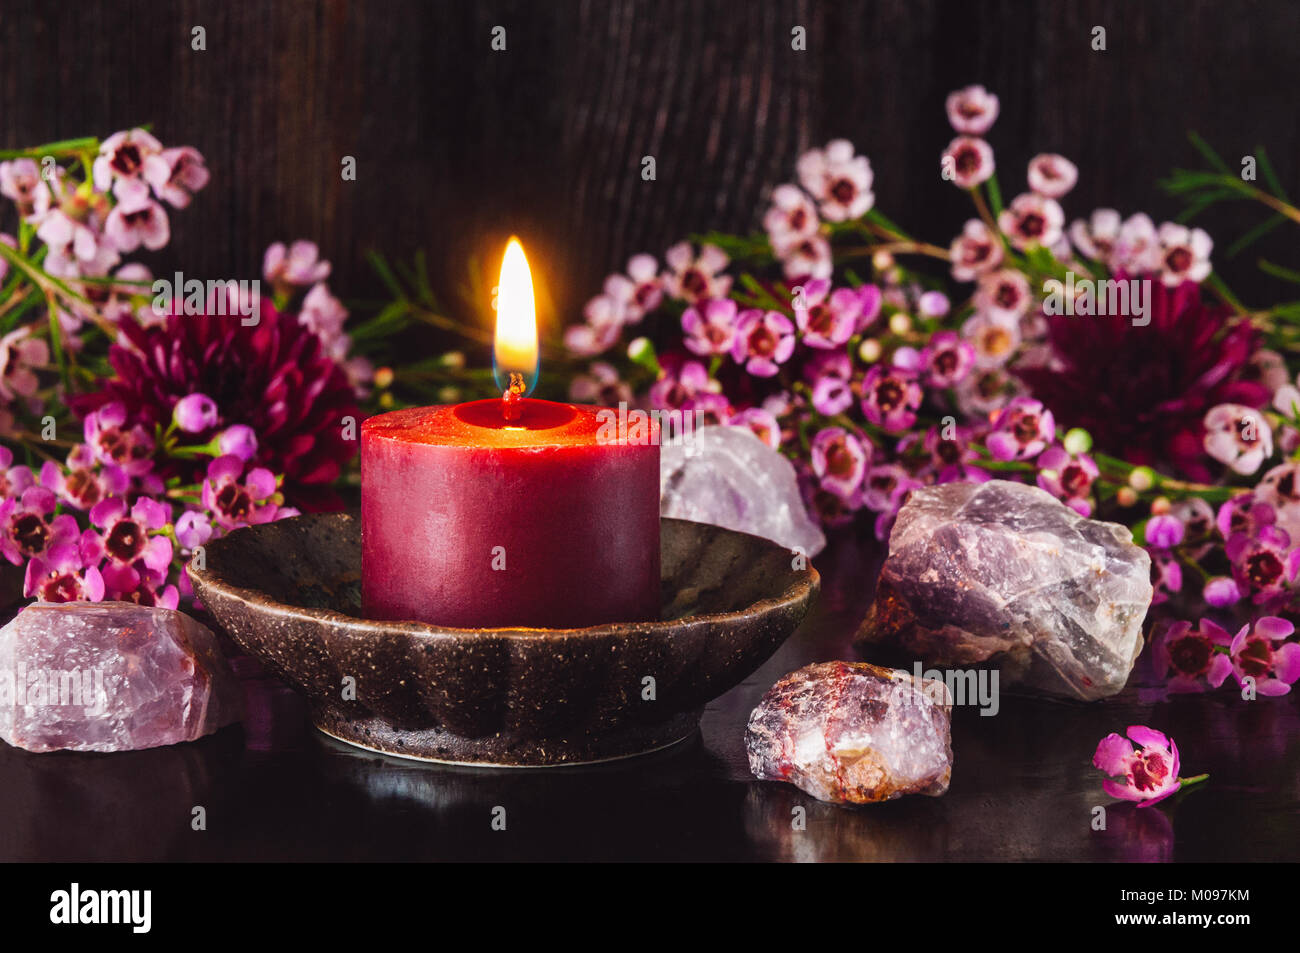 Red Candle with Amethyst Crystals and Mixed Flowers - Stock Image